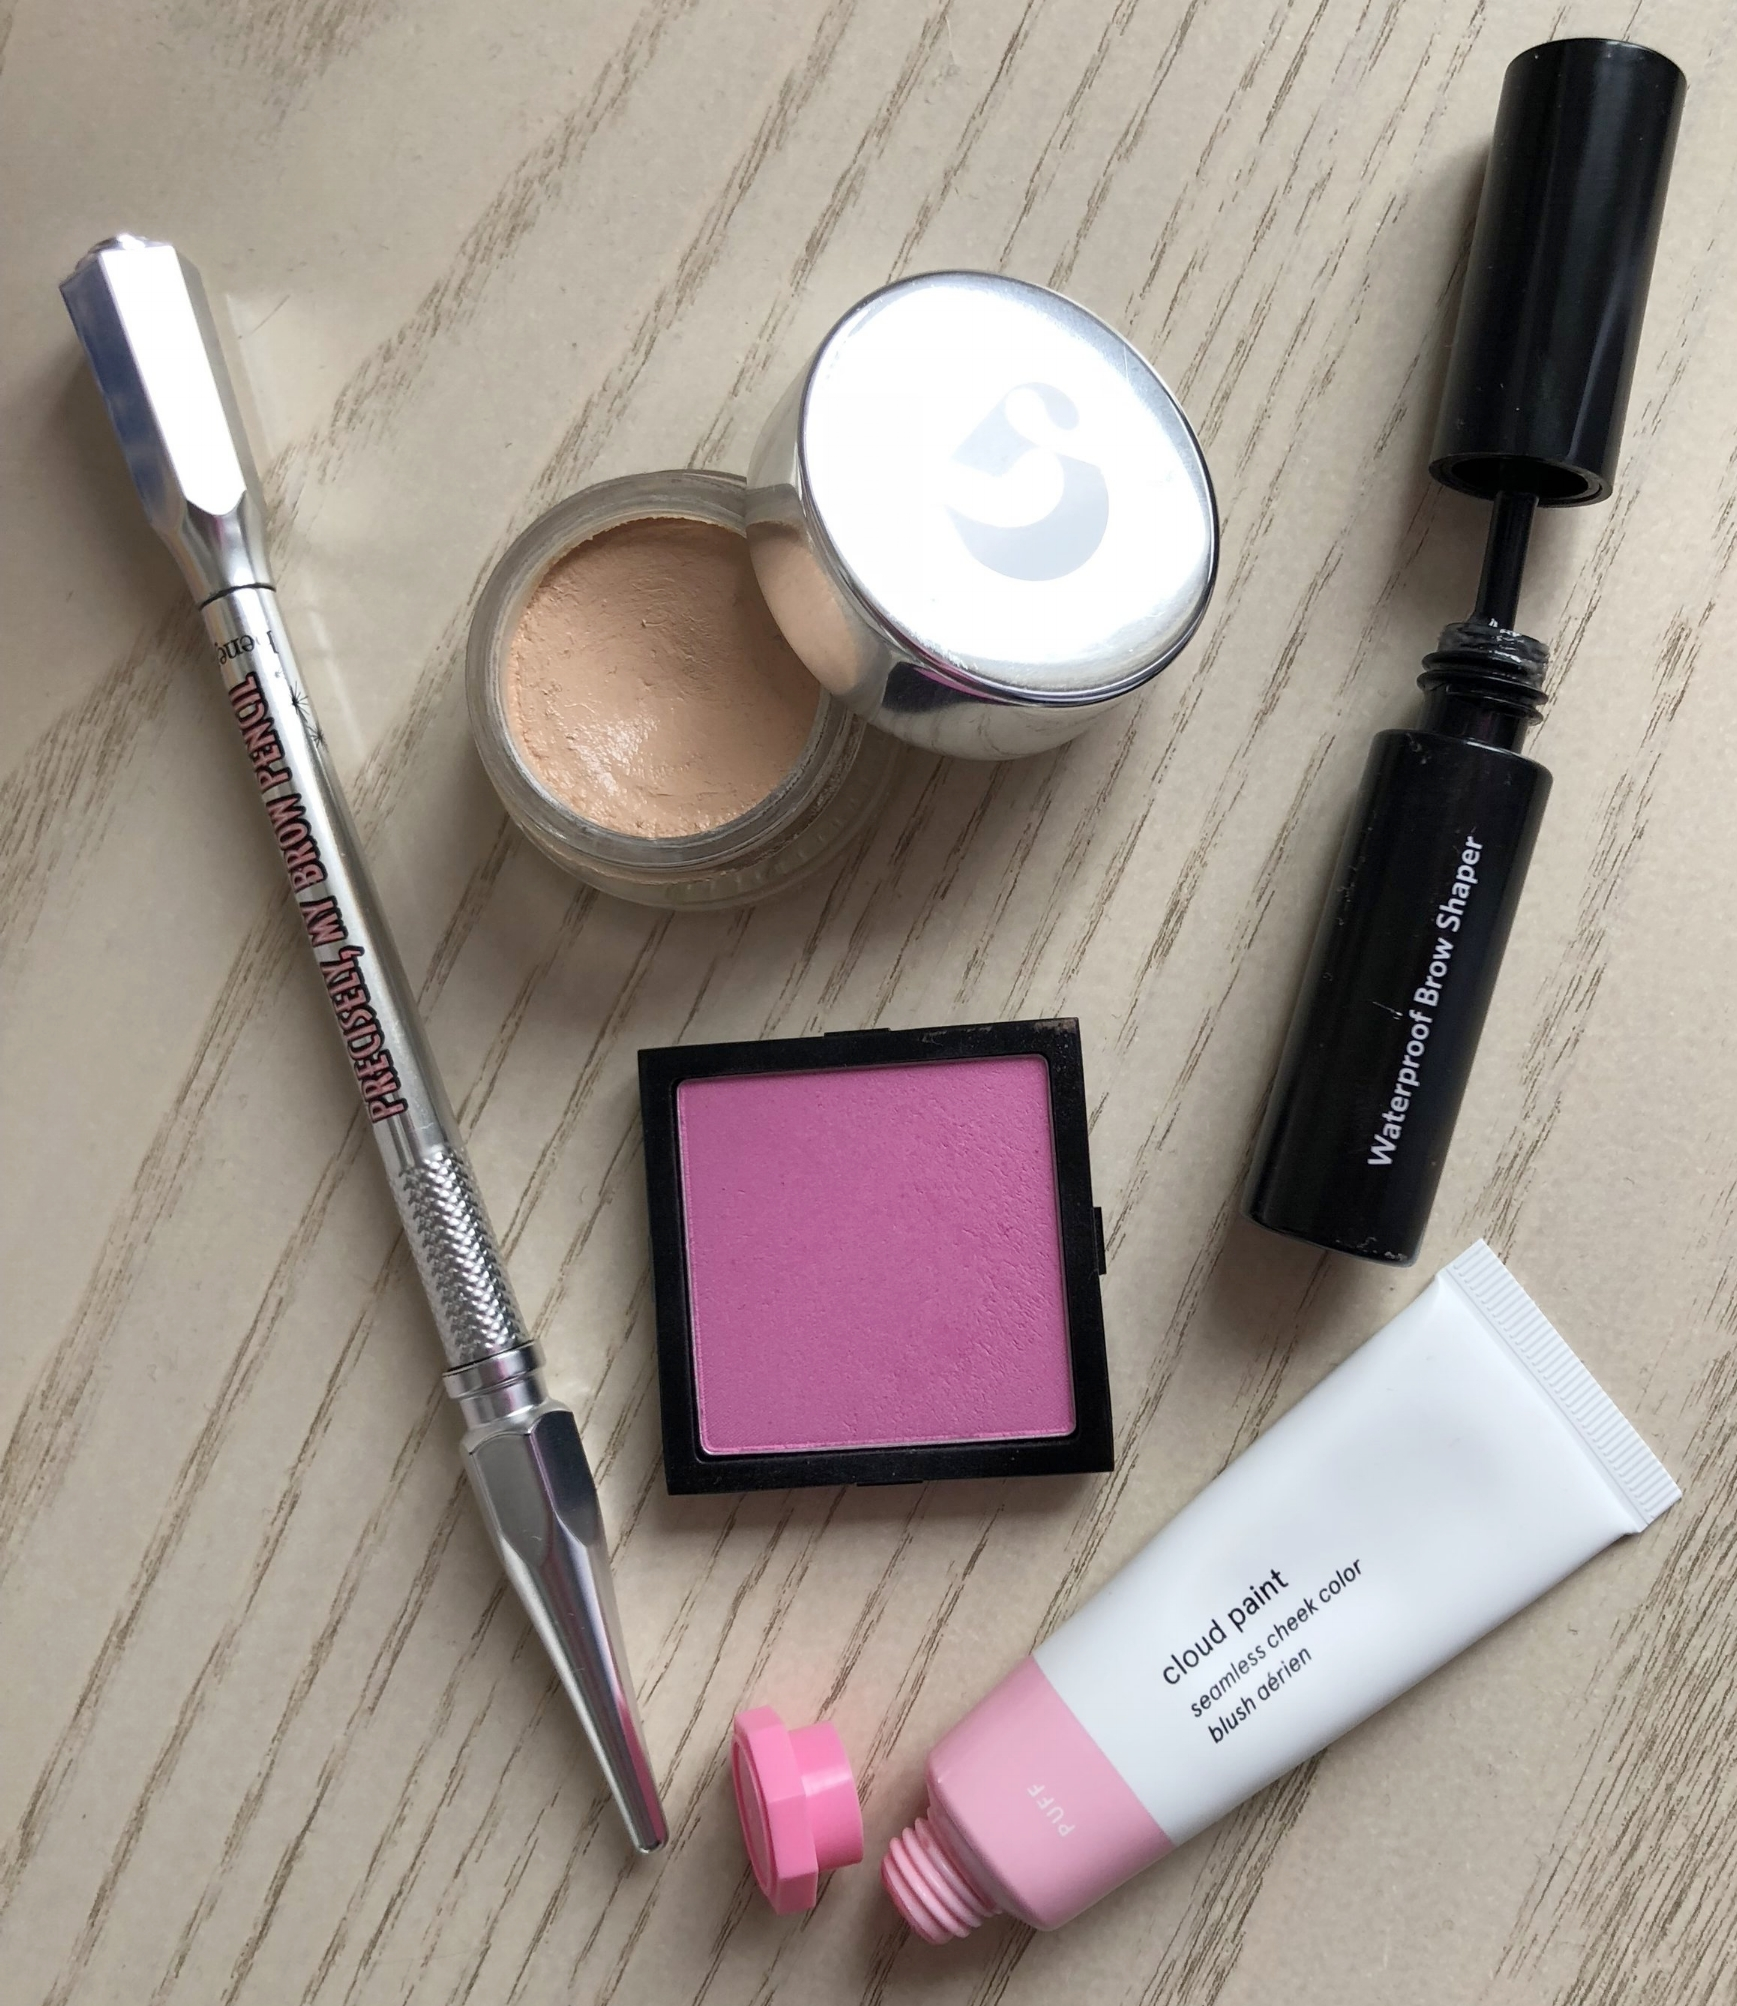 - The weather definitely keeps changing its mind but you can keep spring happy with your fresh flushed makeup looks.You can keep it super natural for your everyday makeup or make it bold for that catwalk twist.